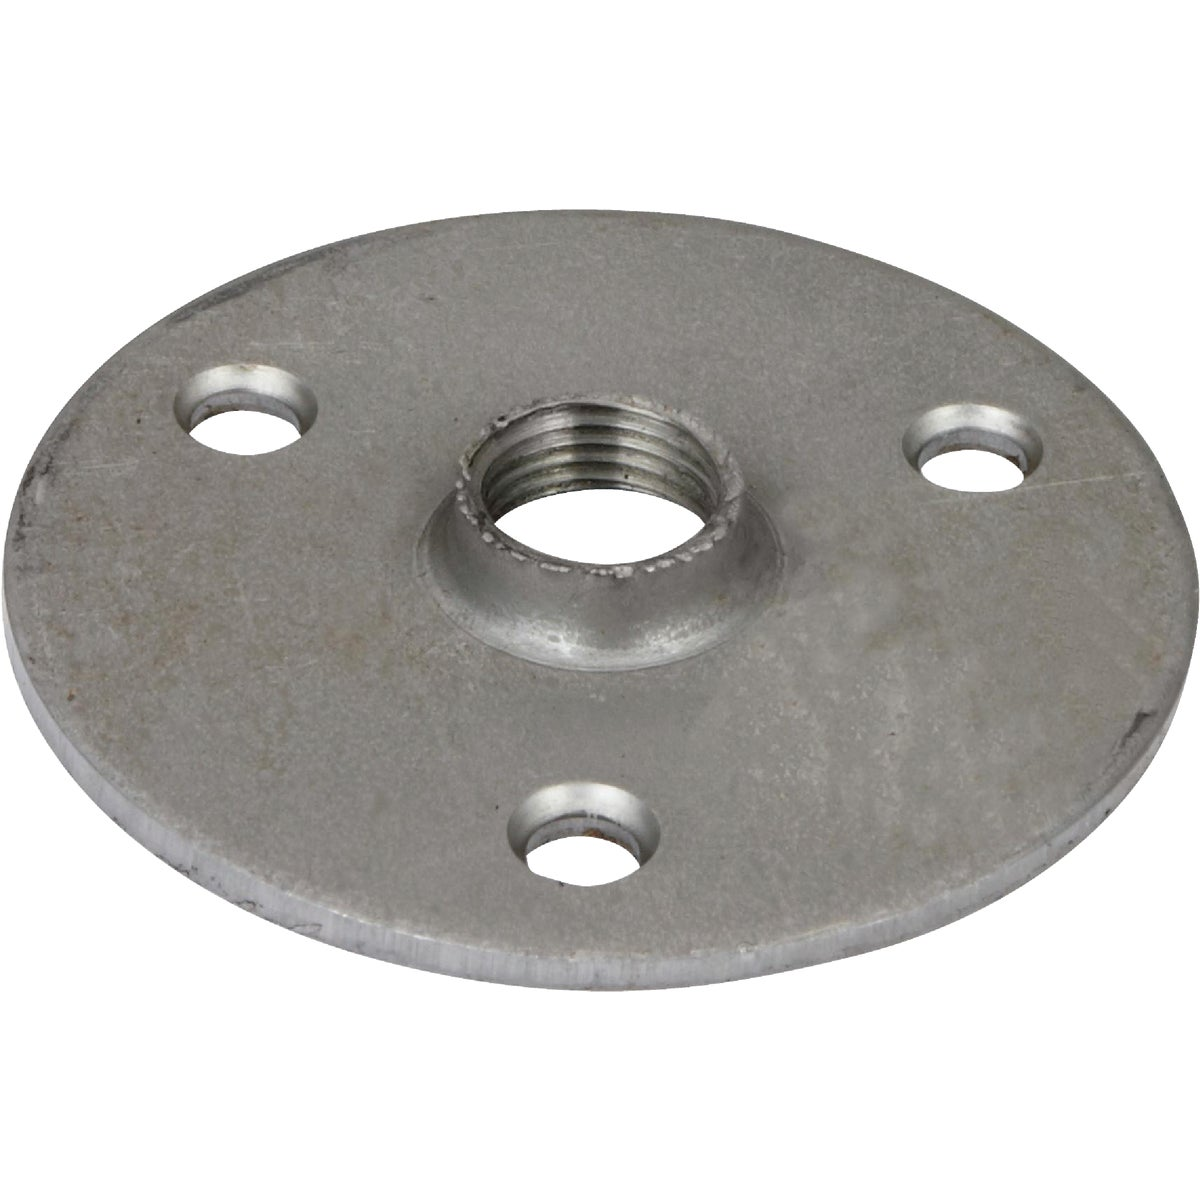 "1/4"" STEEL FLOOR FLANGE -  by Western Reserve Mfg"